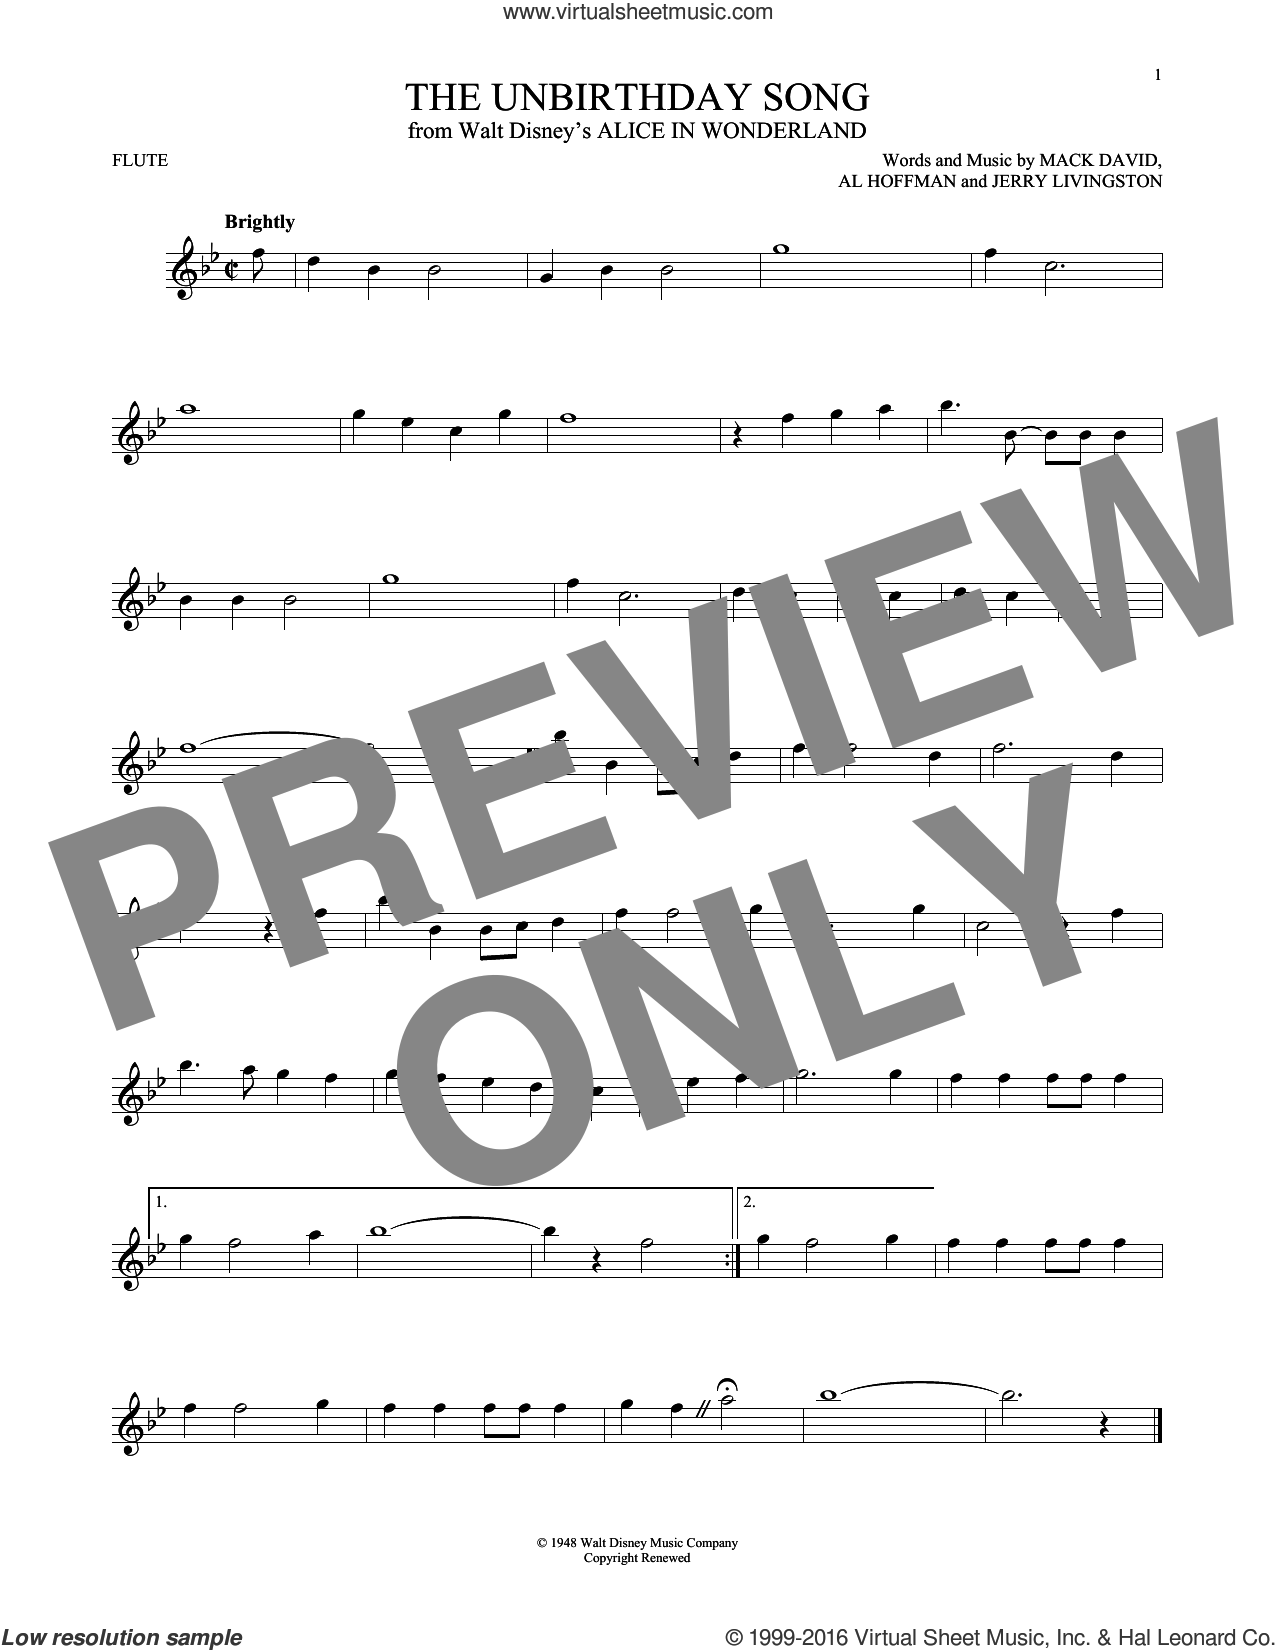 The Unbirthday Song sheet music for flute solo by Al Hoffman, Jerry Livingston, Mack David and Mack David, Al Hoffman and Jerry Livingston, intermediate skill level